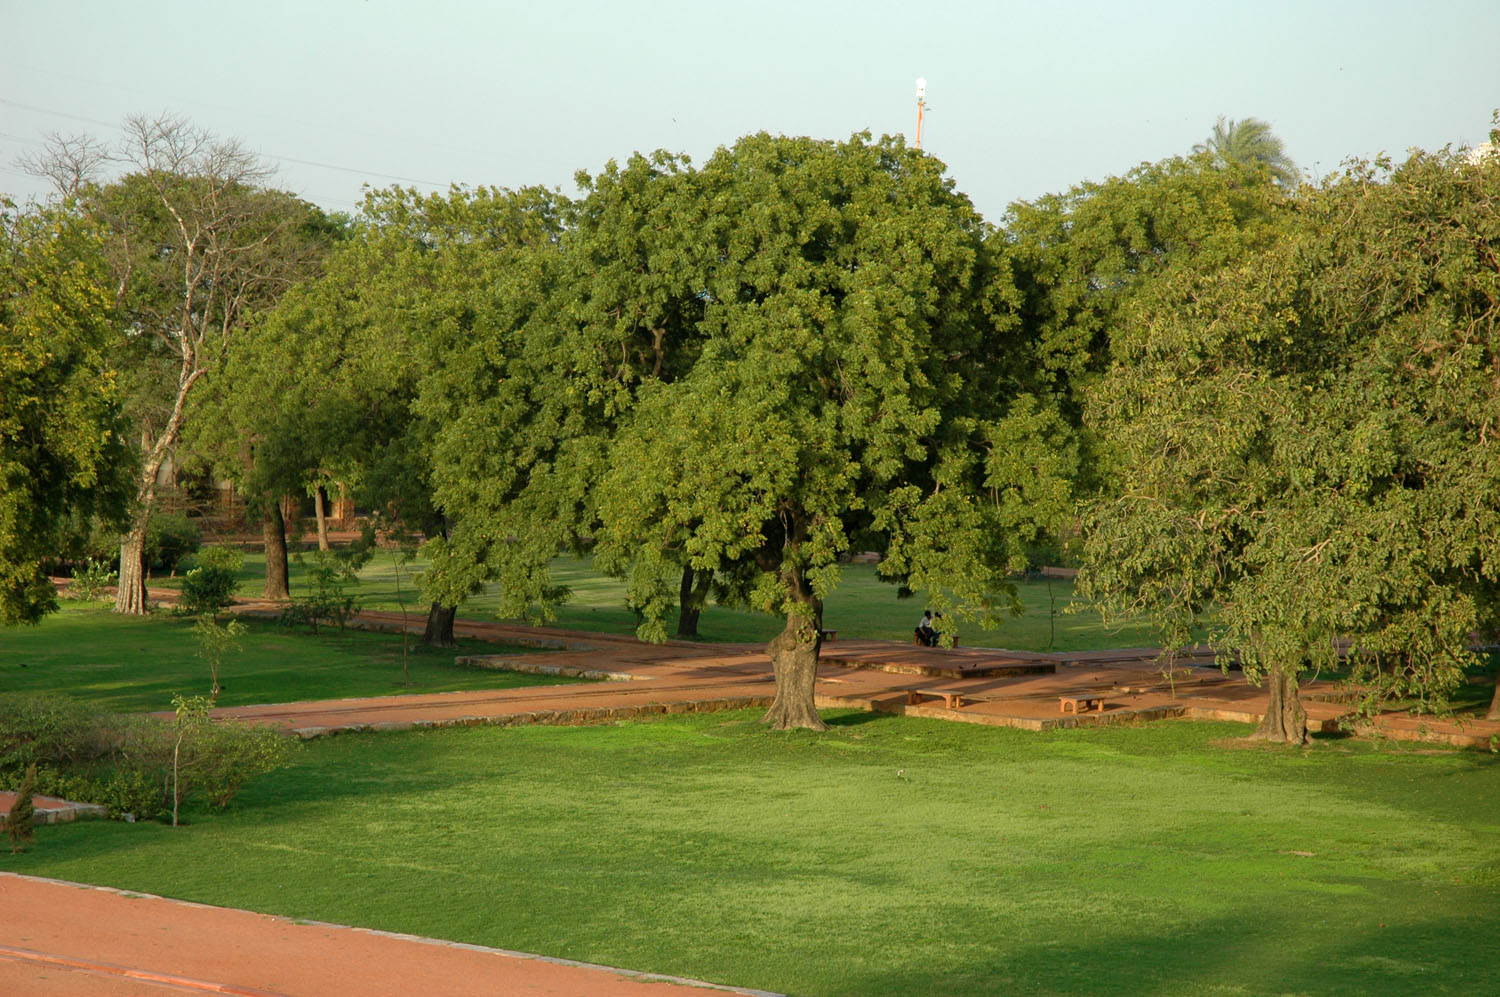 Trees in charbagh from the terrace of Humayun's Tomb complex, New Delhi, 5 March, 2007, photograph by Gordon Brent Ingram